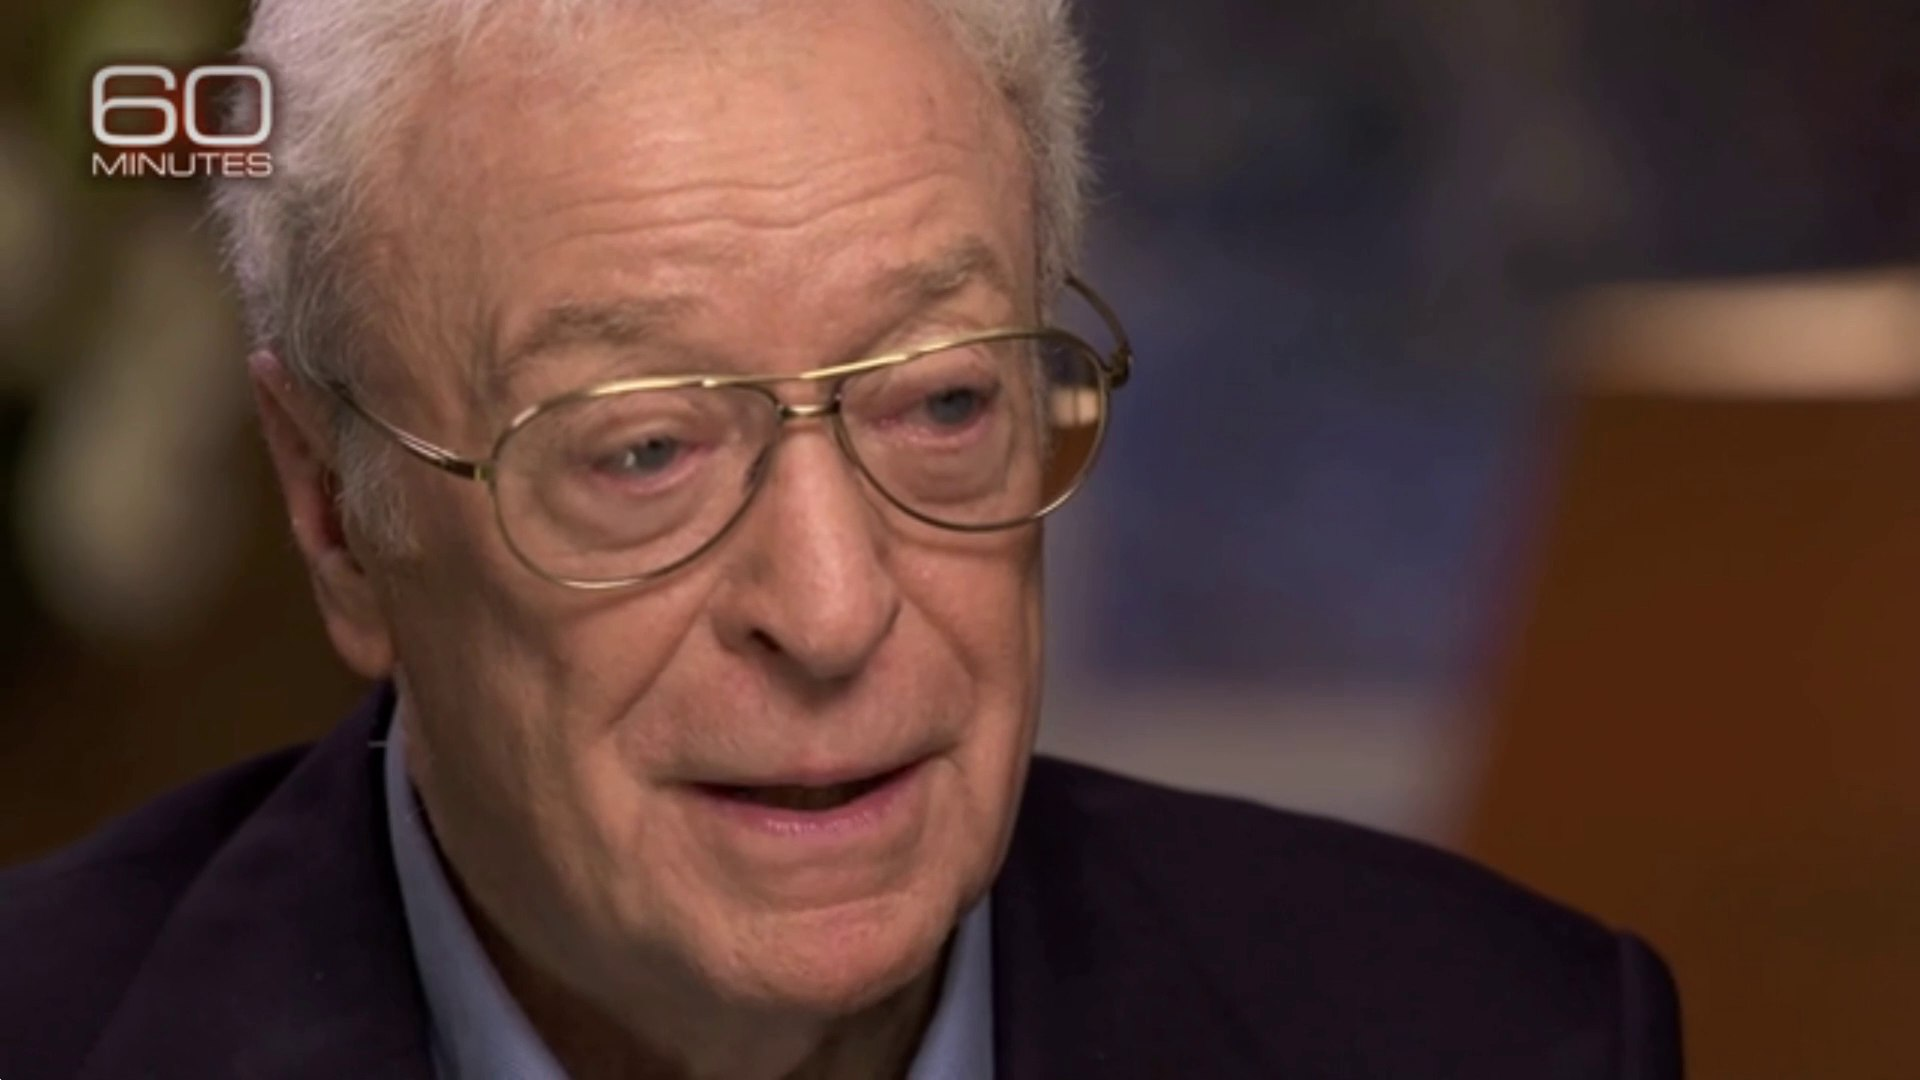 Michael Caine shares story about his grandson and Batman